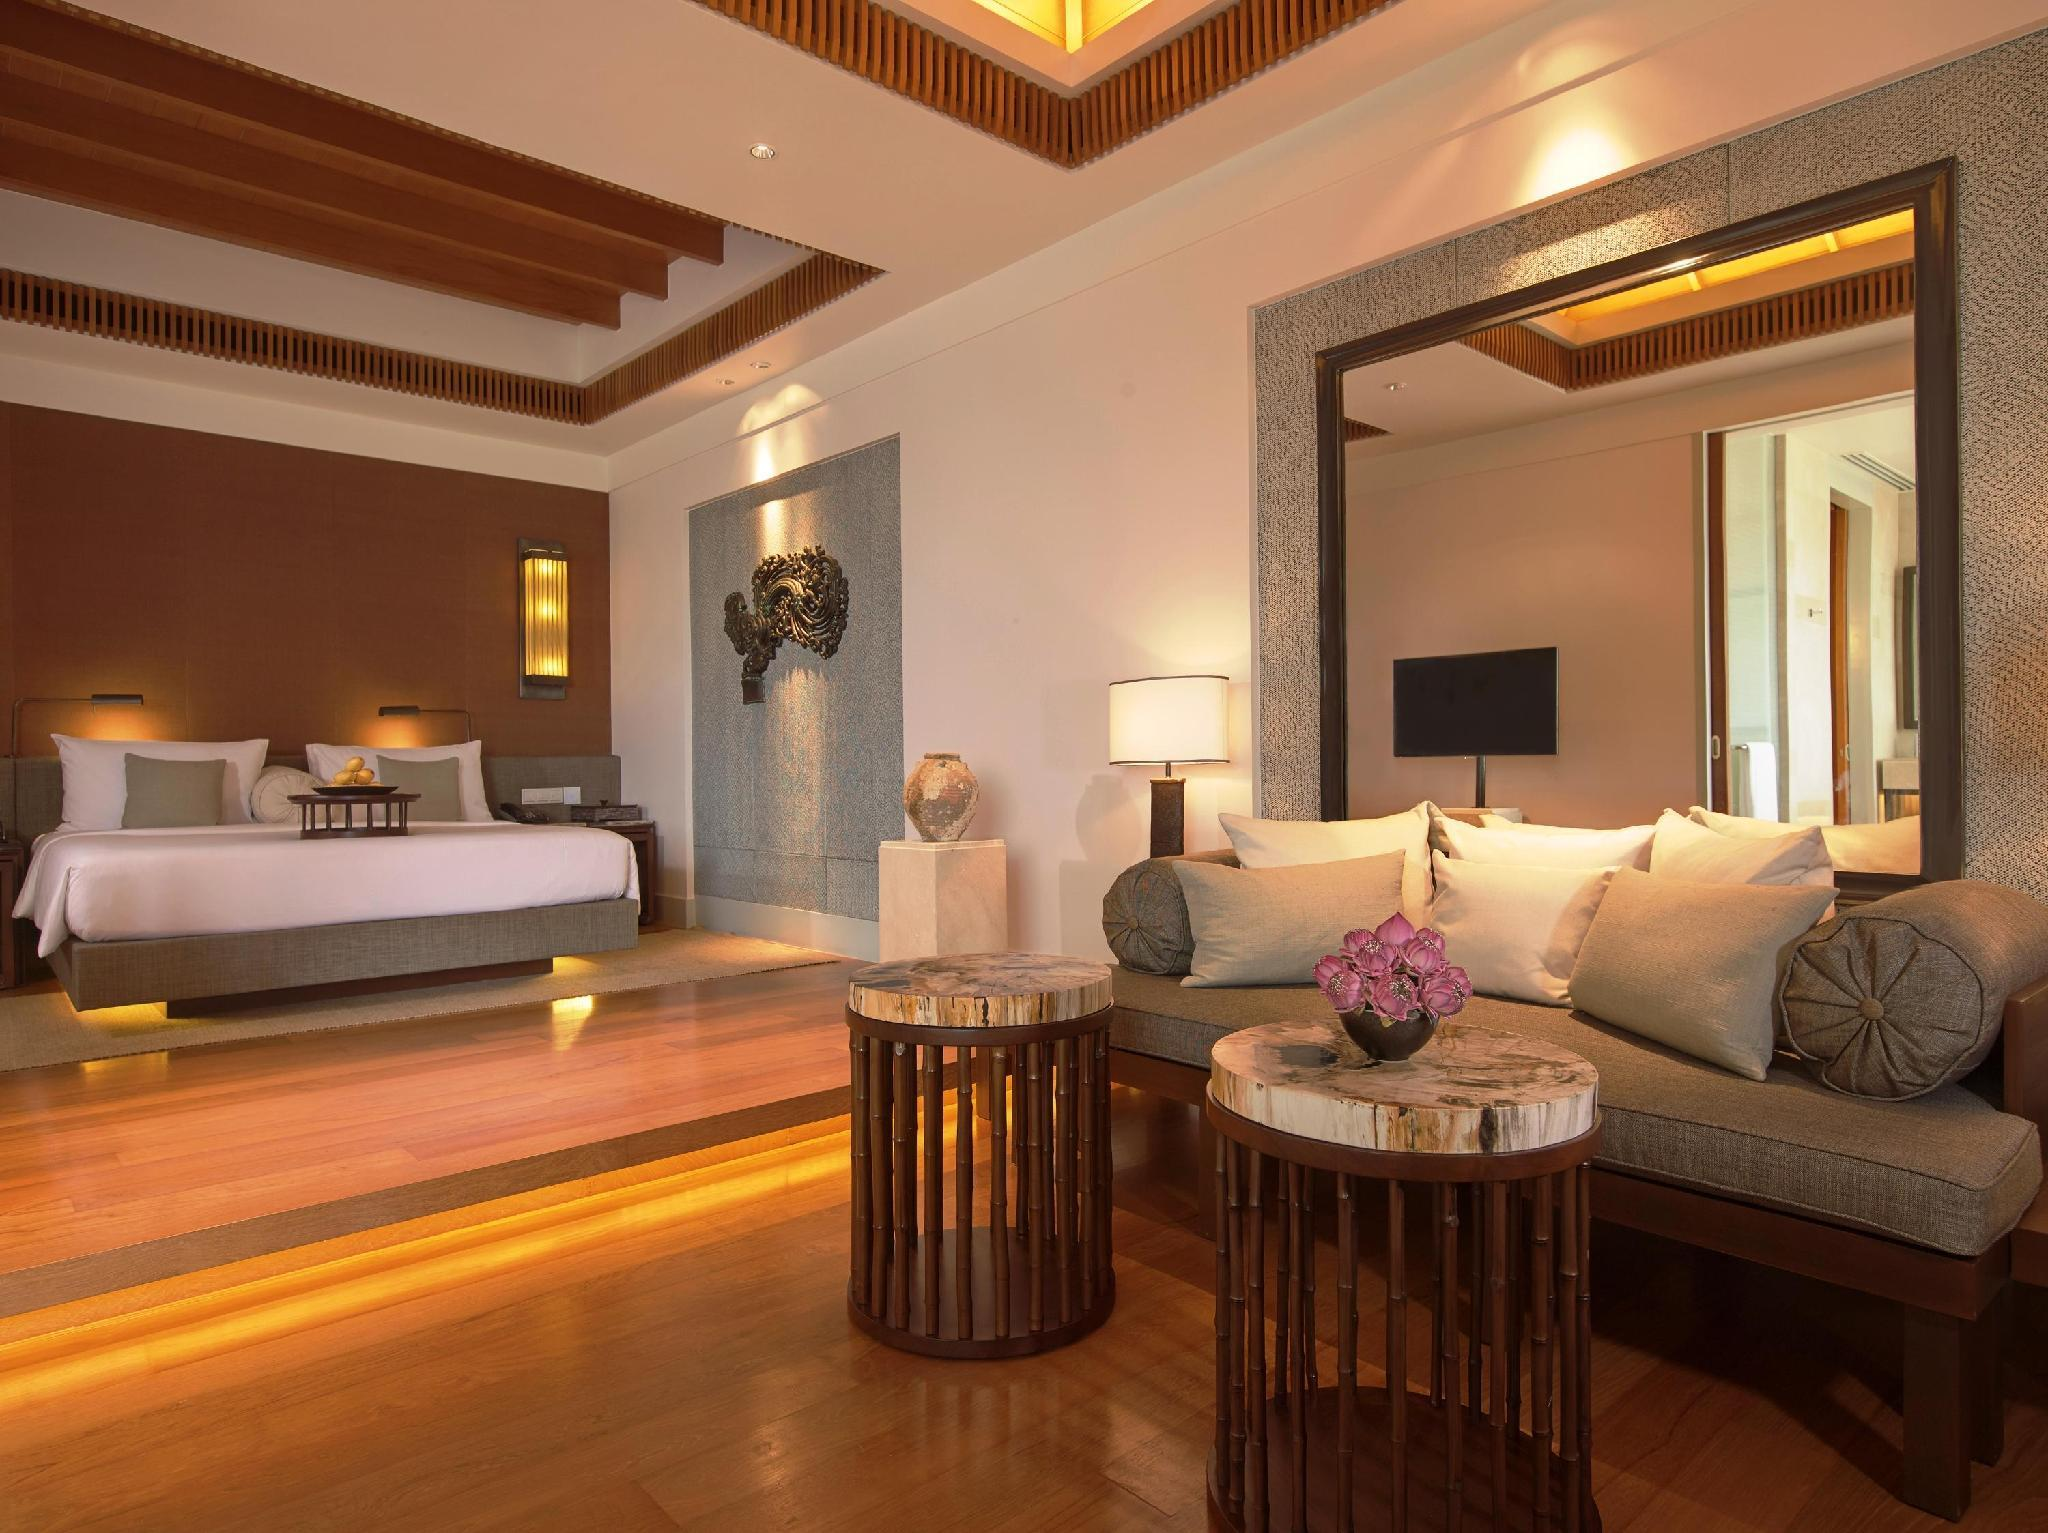 Suite Pemandangan Laut (Sea View Suite)